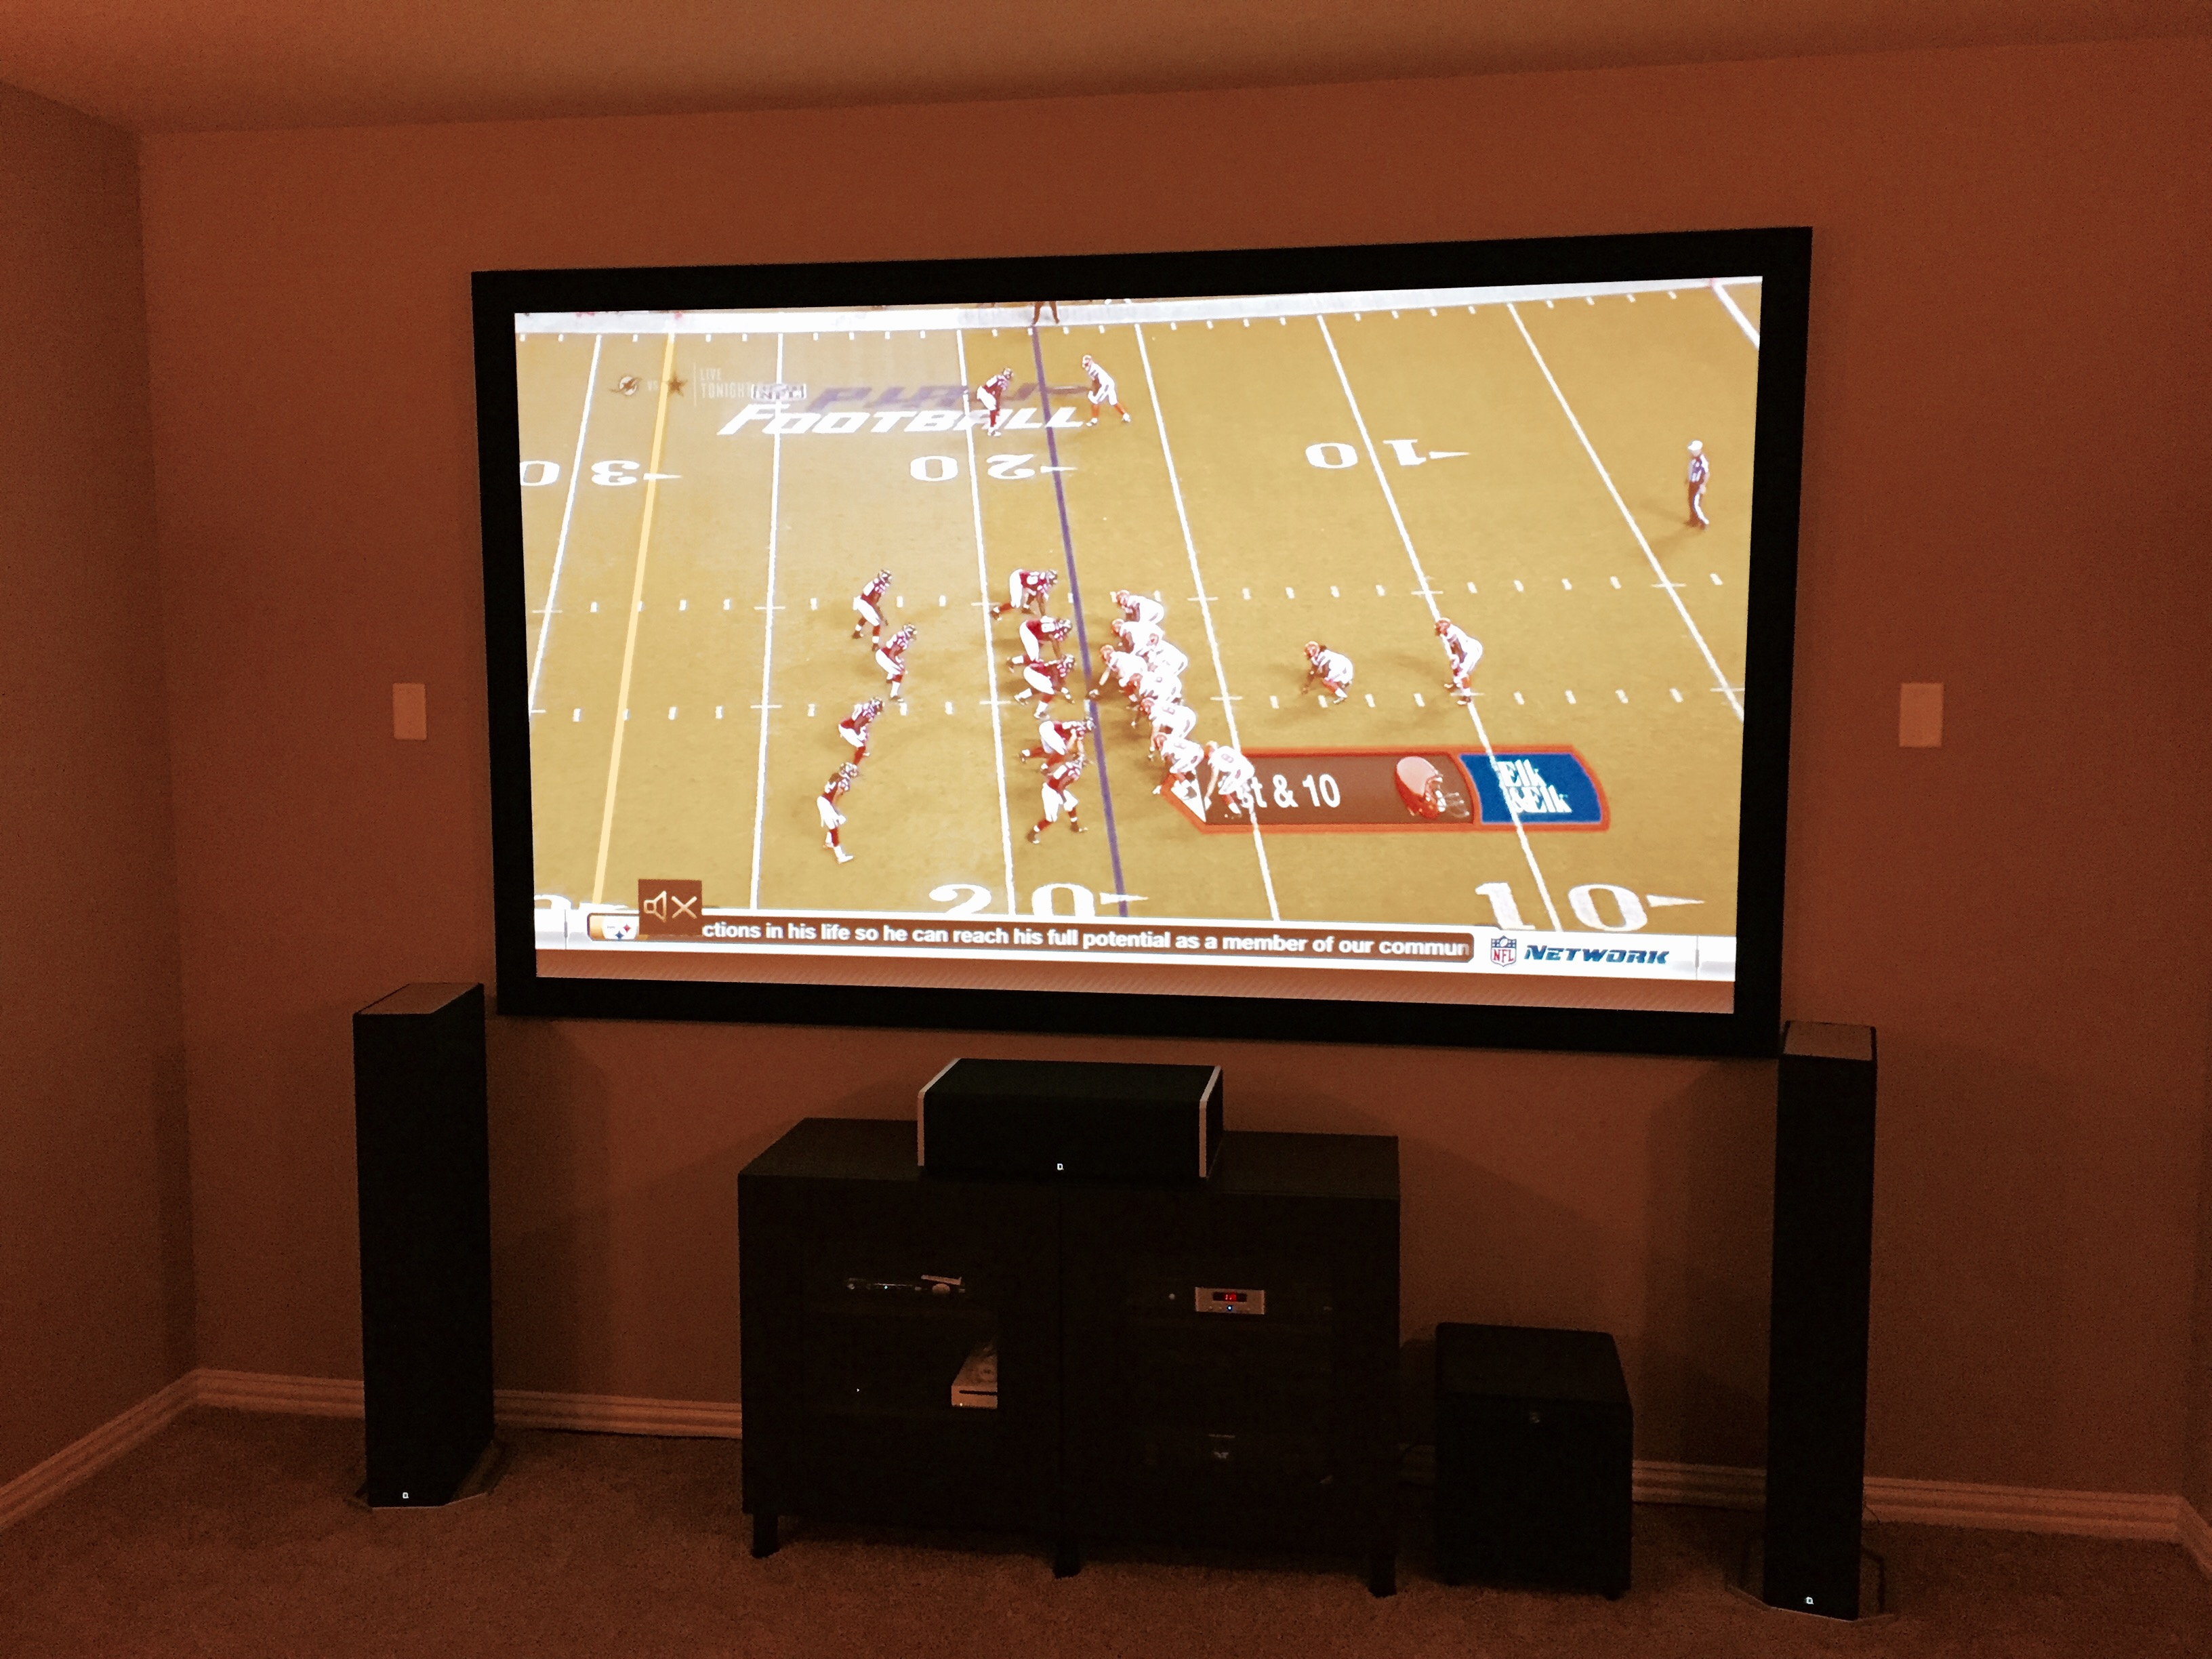 Home Entertainment Ideas To Watch the Big Game - Center Stage A/V